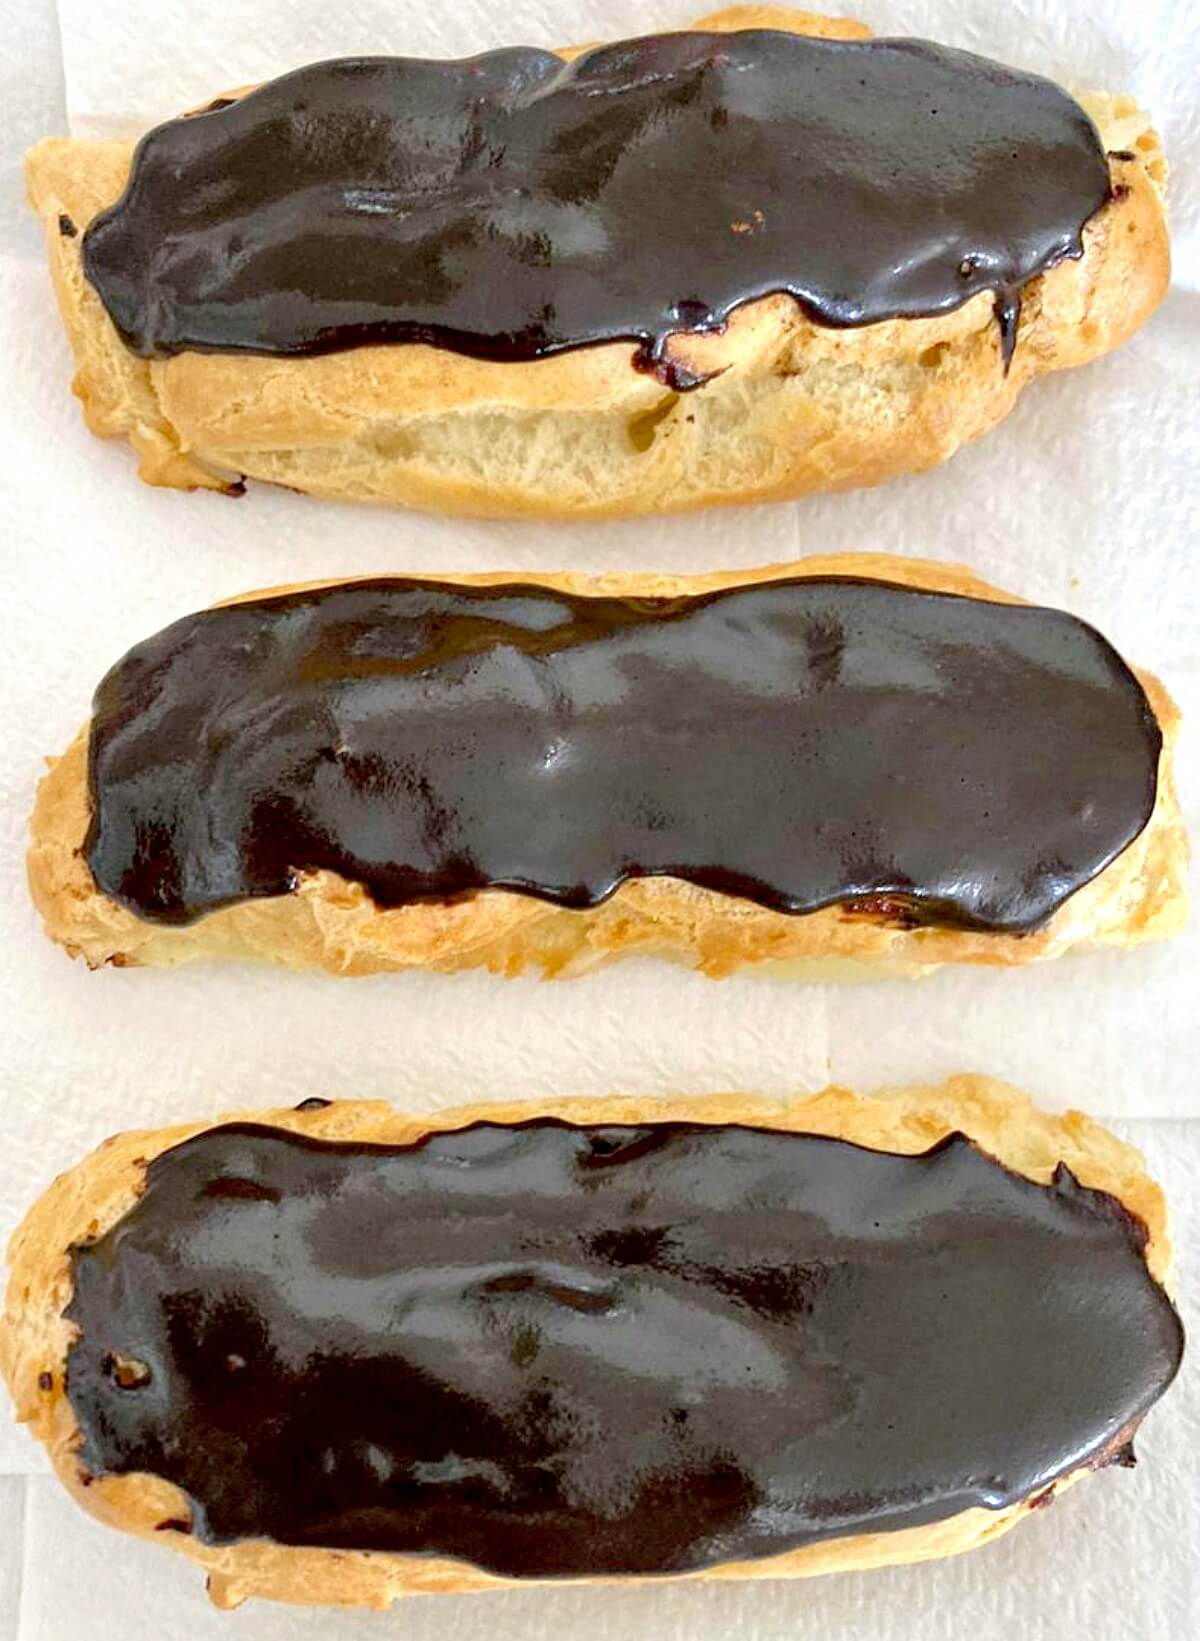 Overhead shoot of 3 chocolate eclairs